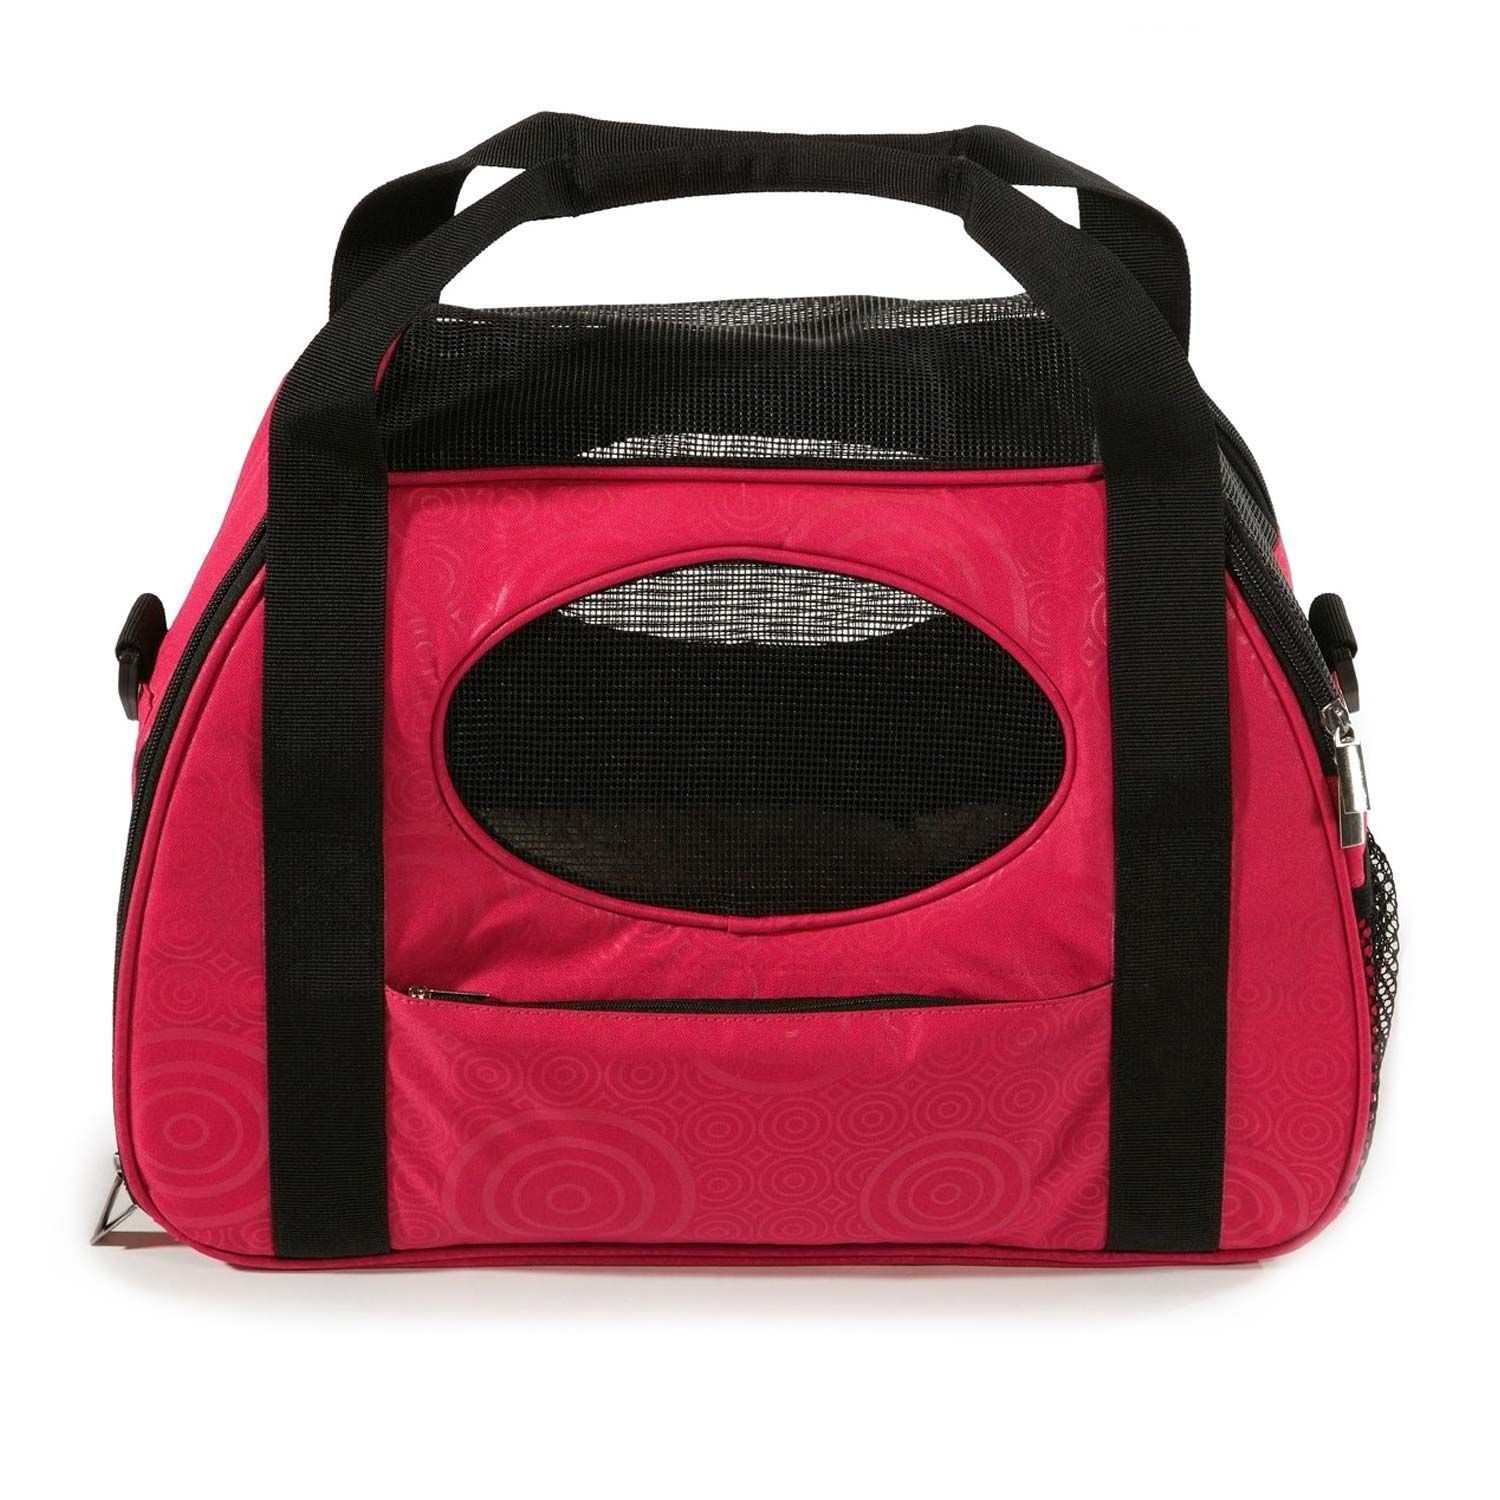 Gen7Pets CarryMe Fashion Pet Carrier in Red Pet